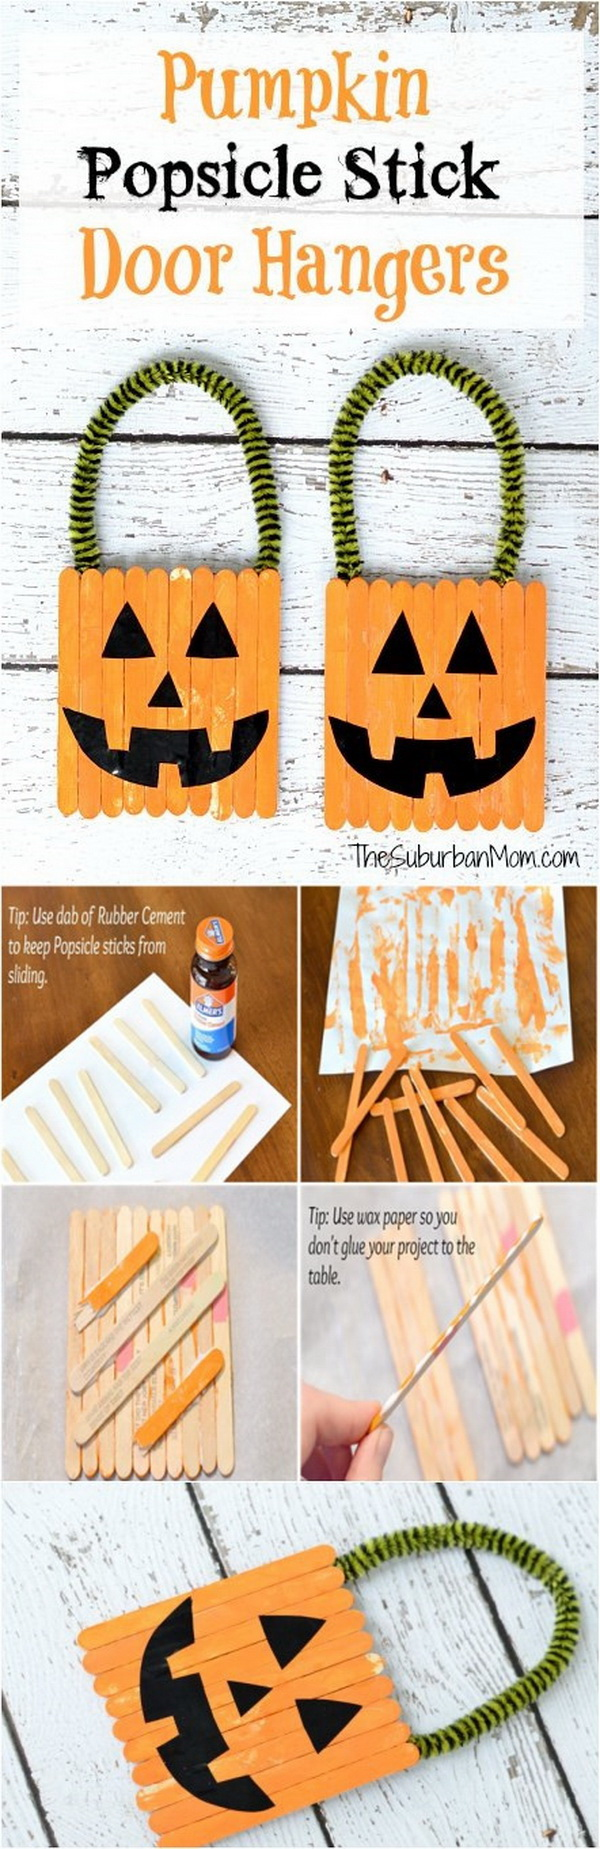 Halloween Pumpkin Popsicle Stick Door Hanger. A fun and easy way to decorate for Halloween with these cute, homemade door hangers. Halloween Kids Craft. Neat Halloween idea!